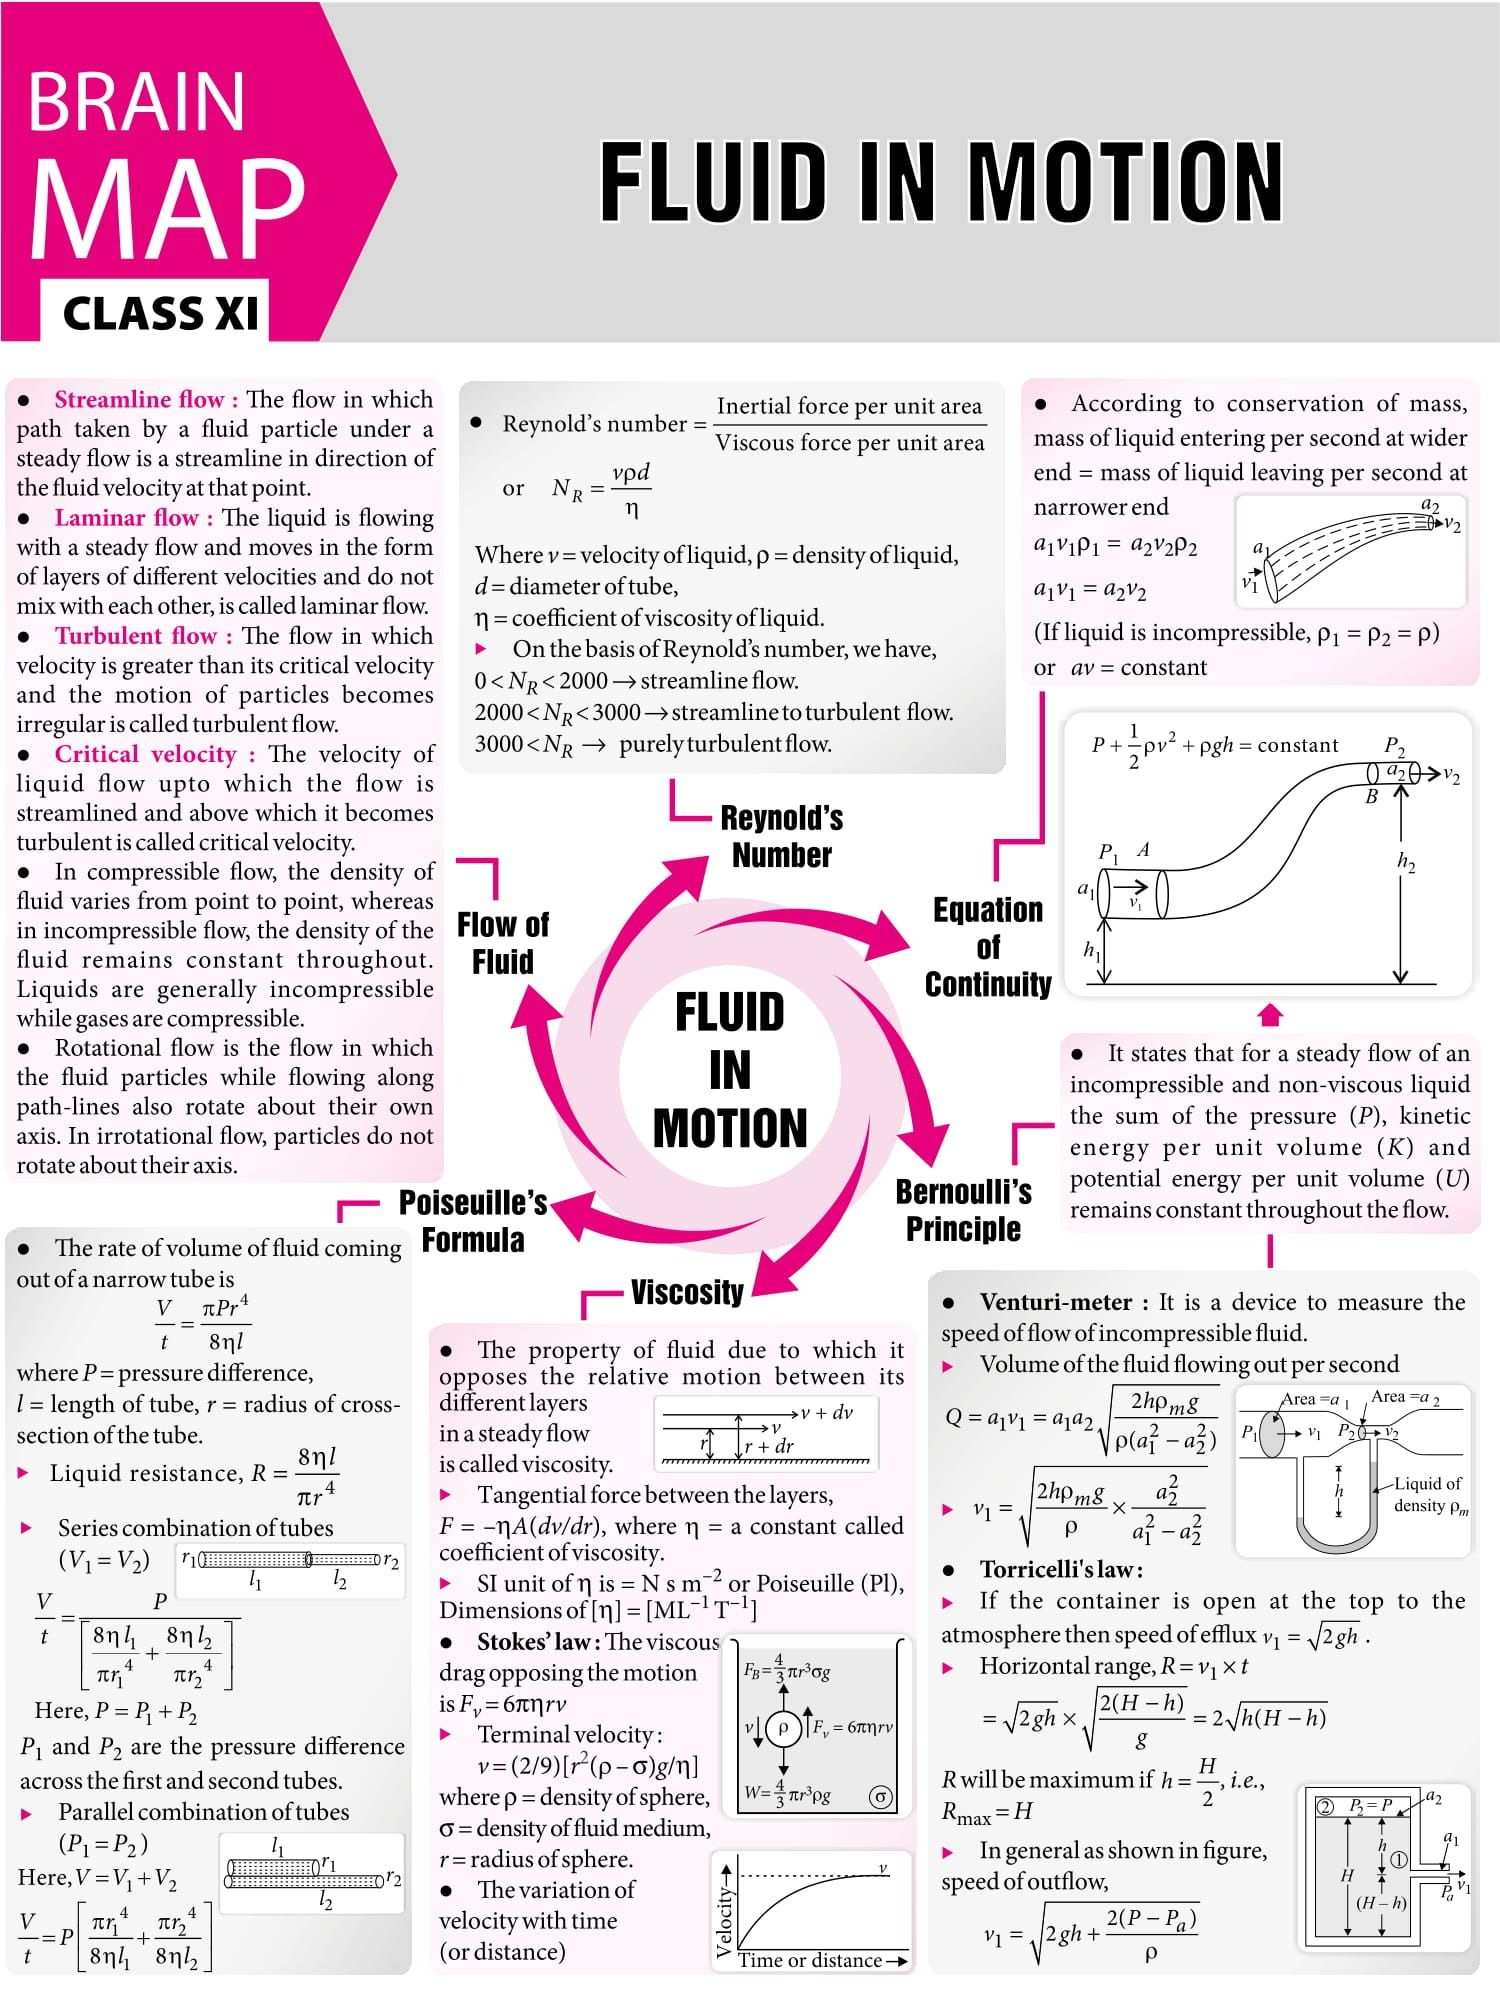 Fluid In Motion Concept Map Mtg Physics For You Magazine Jeemain Jeeadvanced Class11 Physics And Mathematics Physics Lessons Physics Classroom